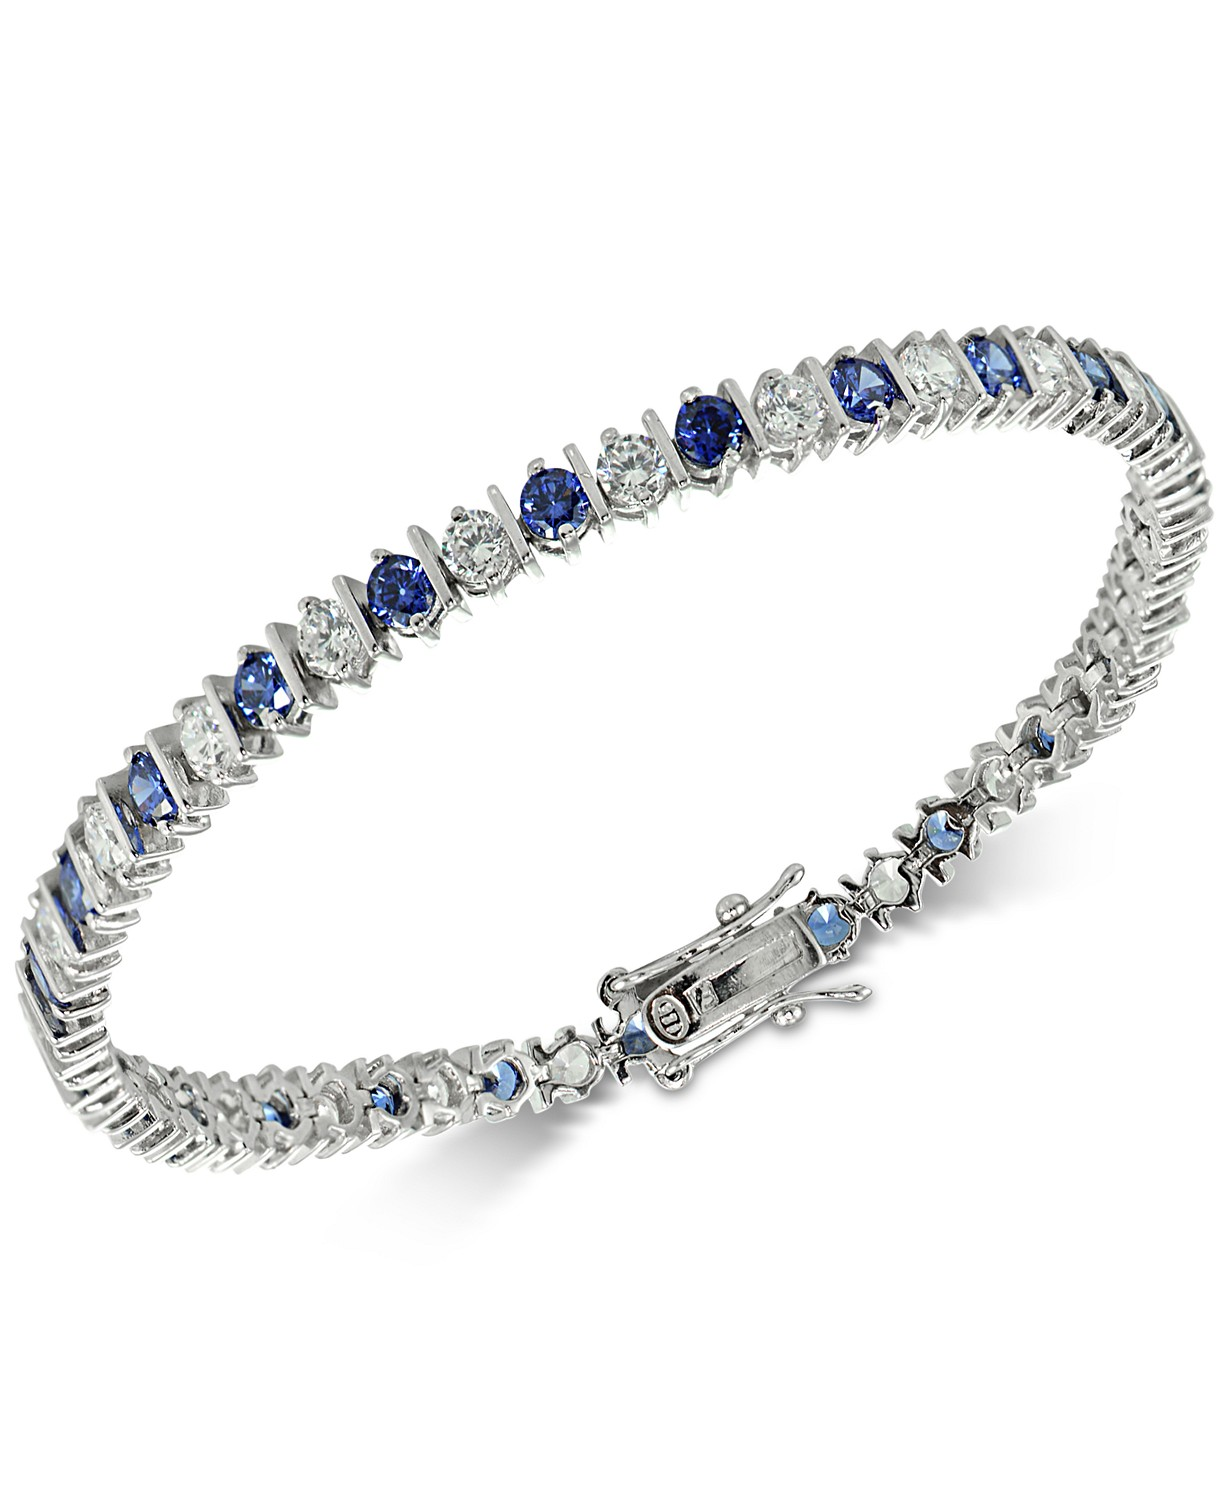 Blue Cubic Zirconia Tennis Bracelet in Sterling Silver